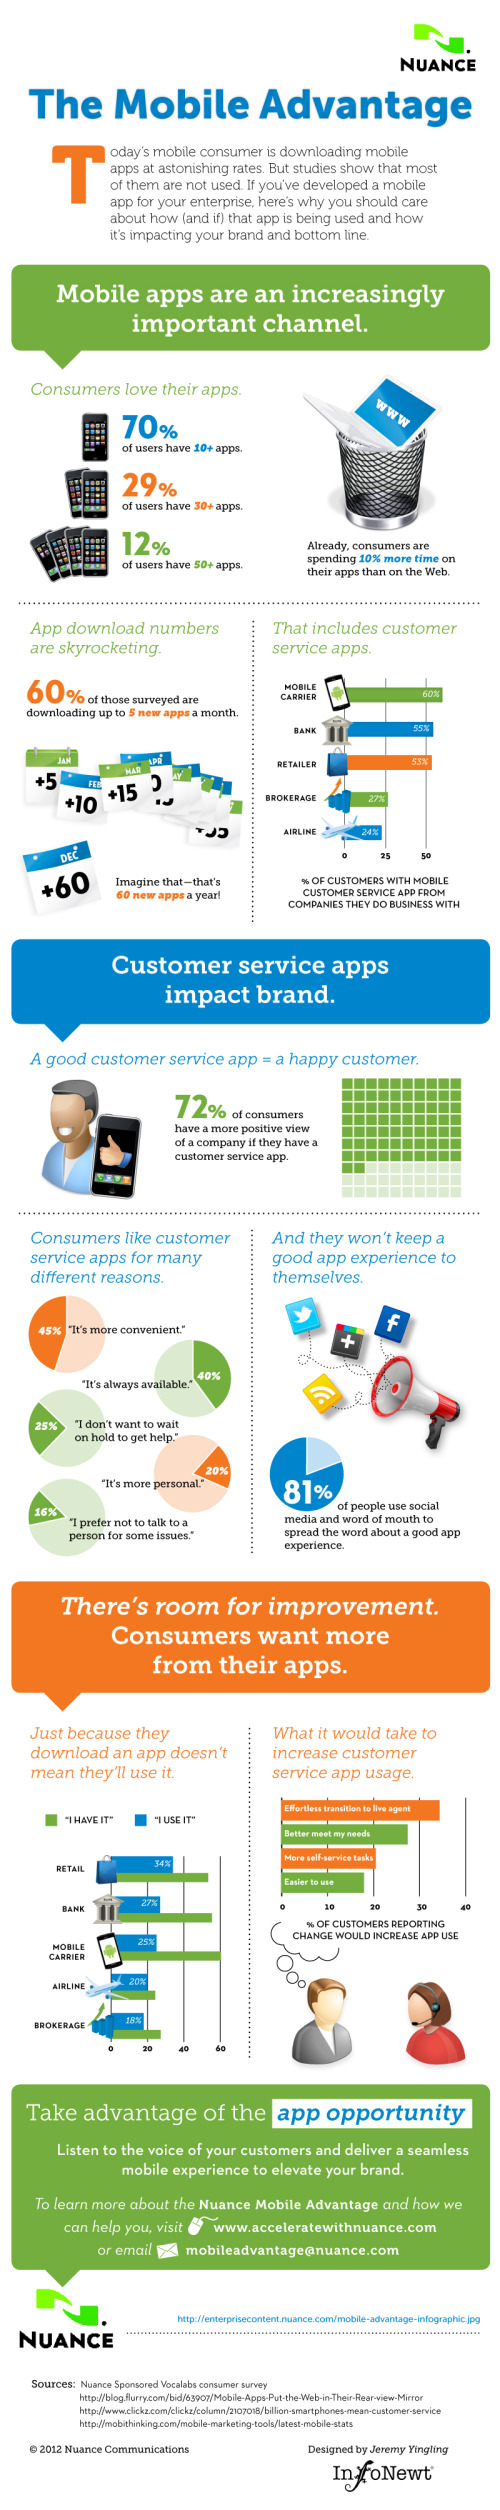 Client Infographic: The Mobile Advantage infographic